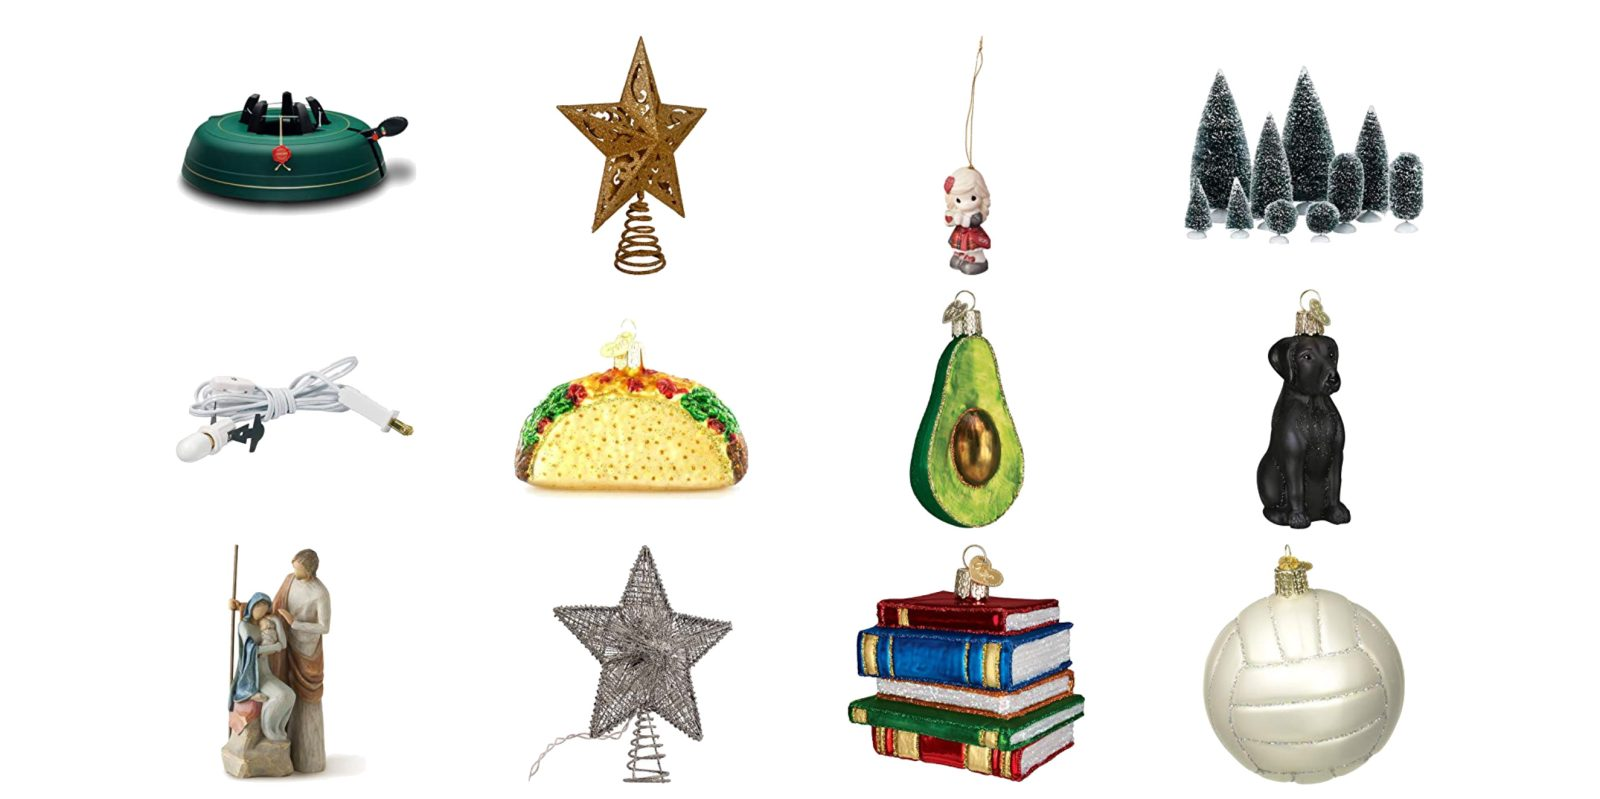 Today's Gold Box has holiday ornaments, tree accessories, more from $5